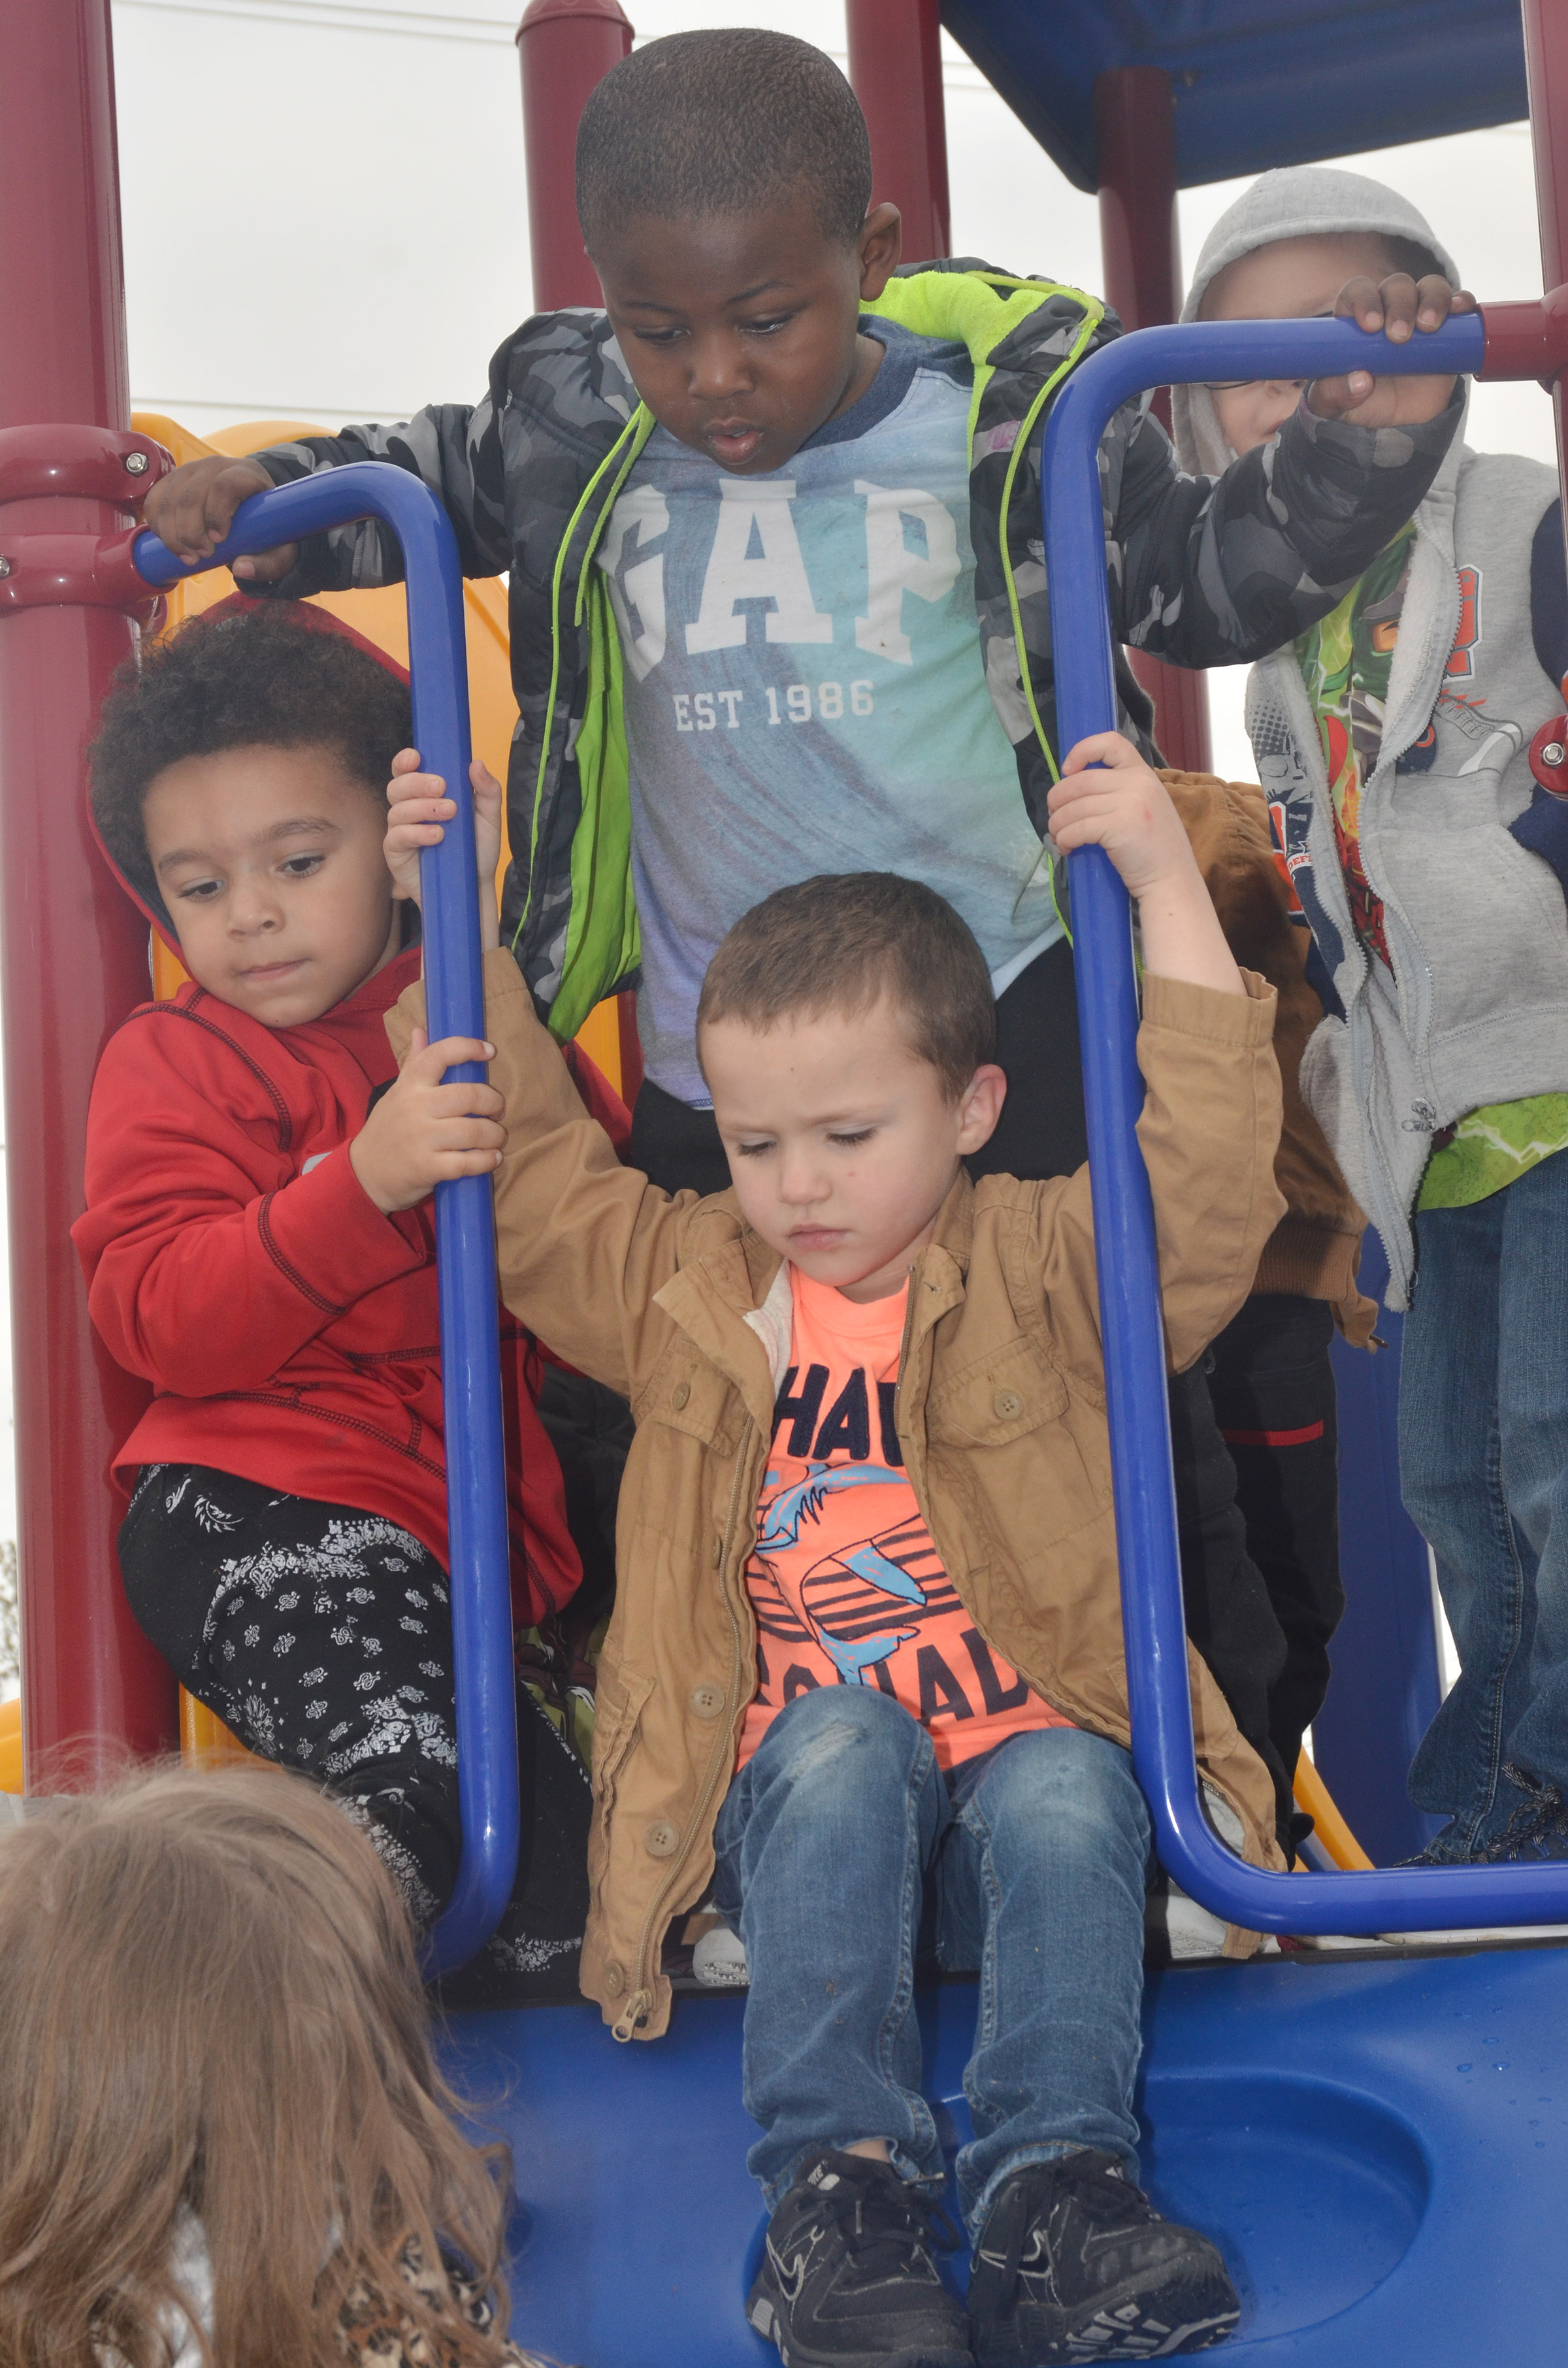 CES preschool student Triton Bradshaw climbs as his classmates Tyrek Moore, at left, and LaTayvion Brown wait their turn, as they and their classmates enjoy some playground time.